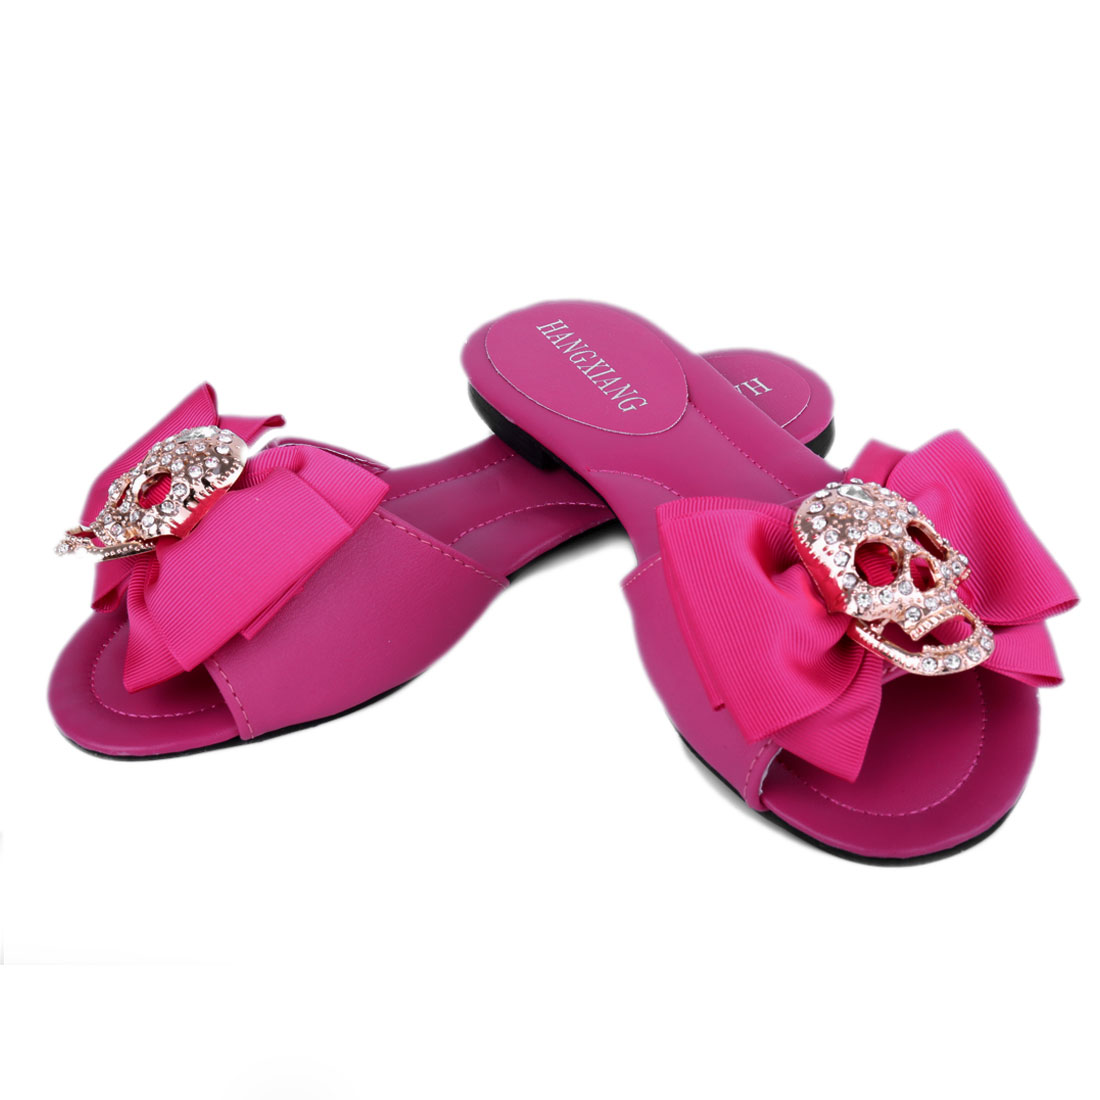 Unique Bargains Ladies Skull Bowknot Detail Casual Slippers Fuchsia US 6.5 at Sears.com